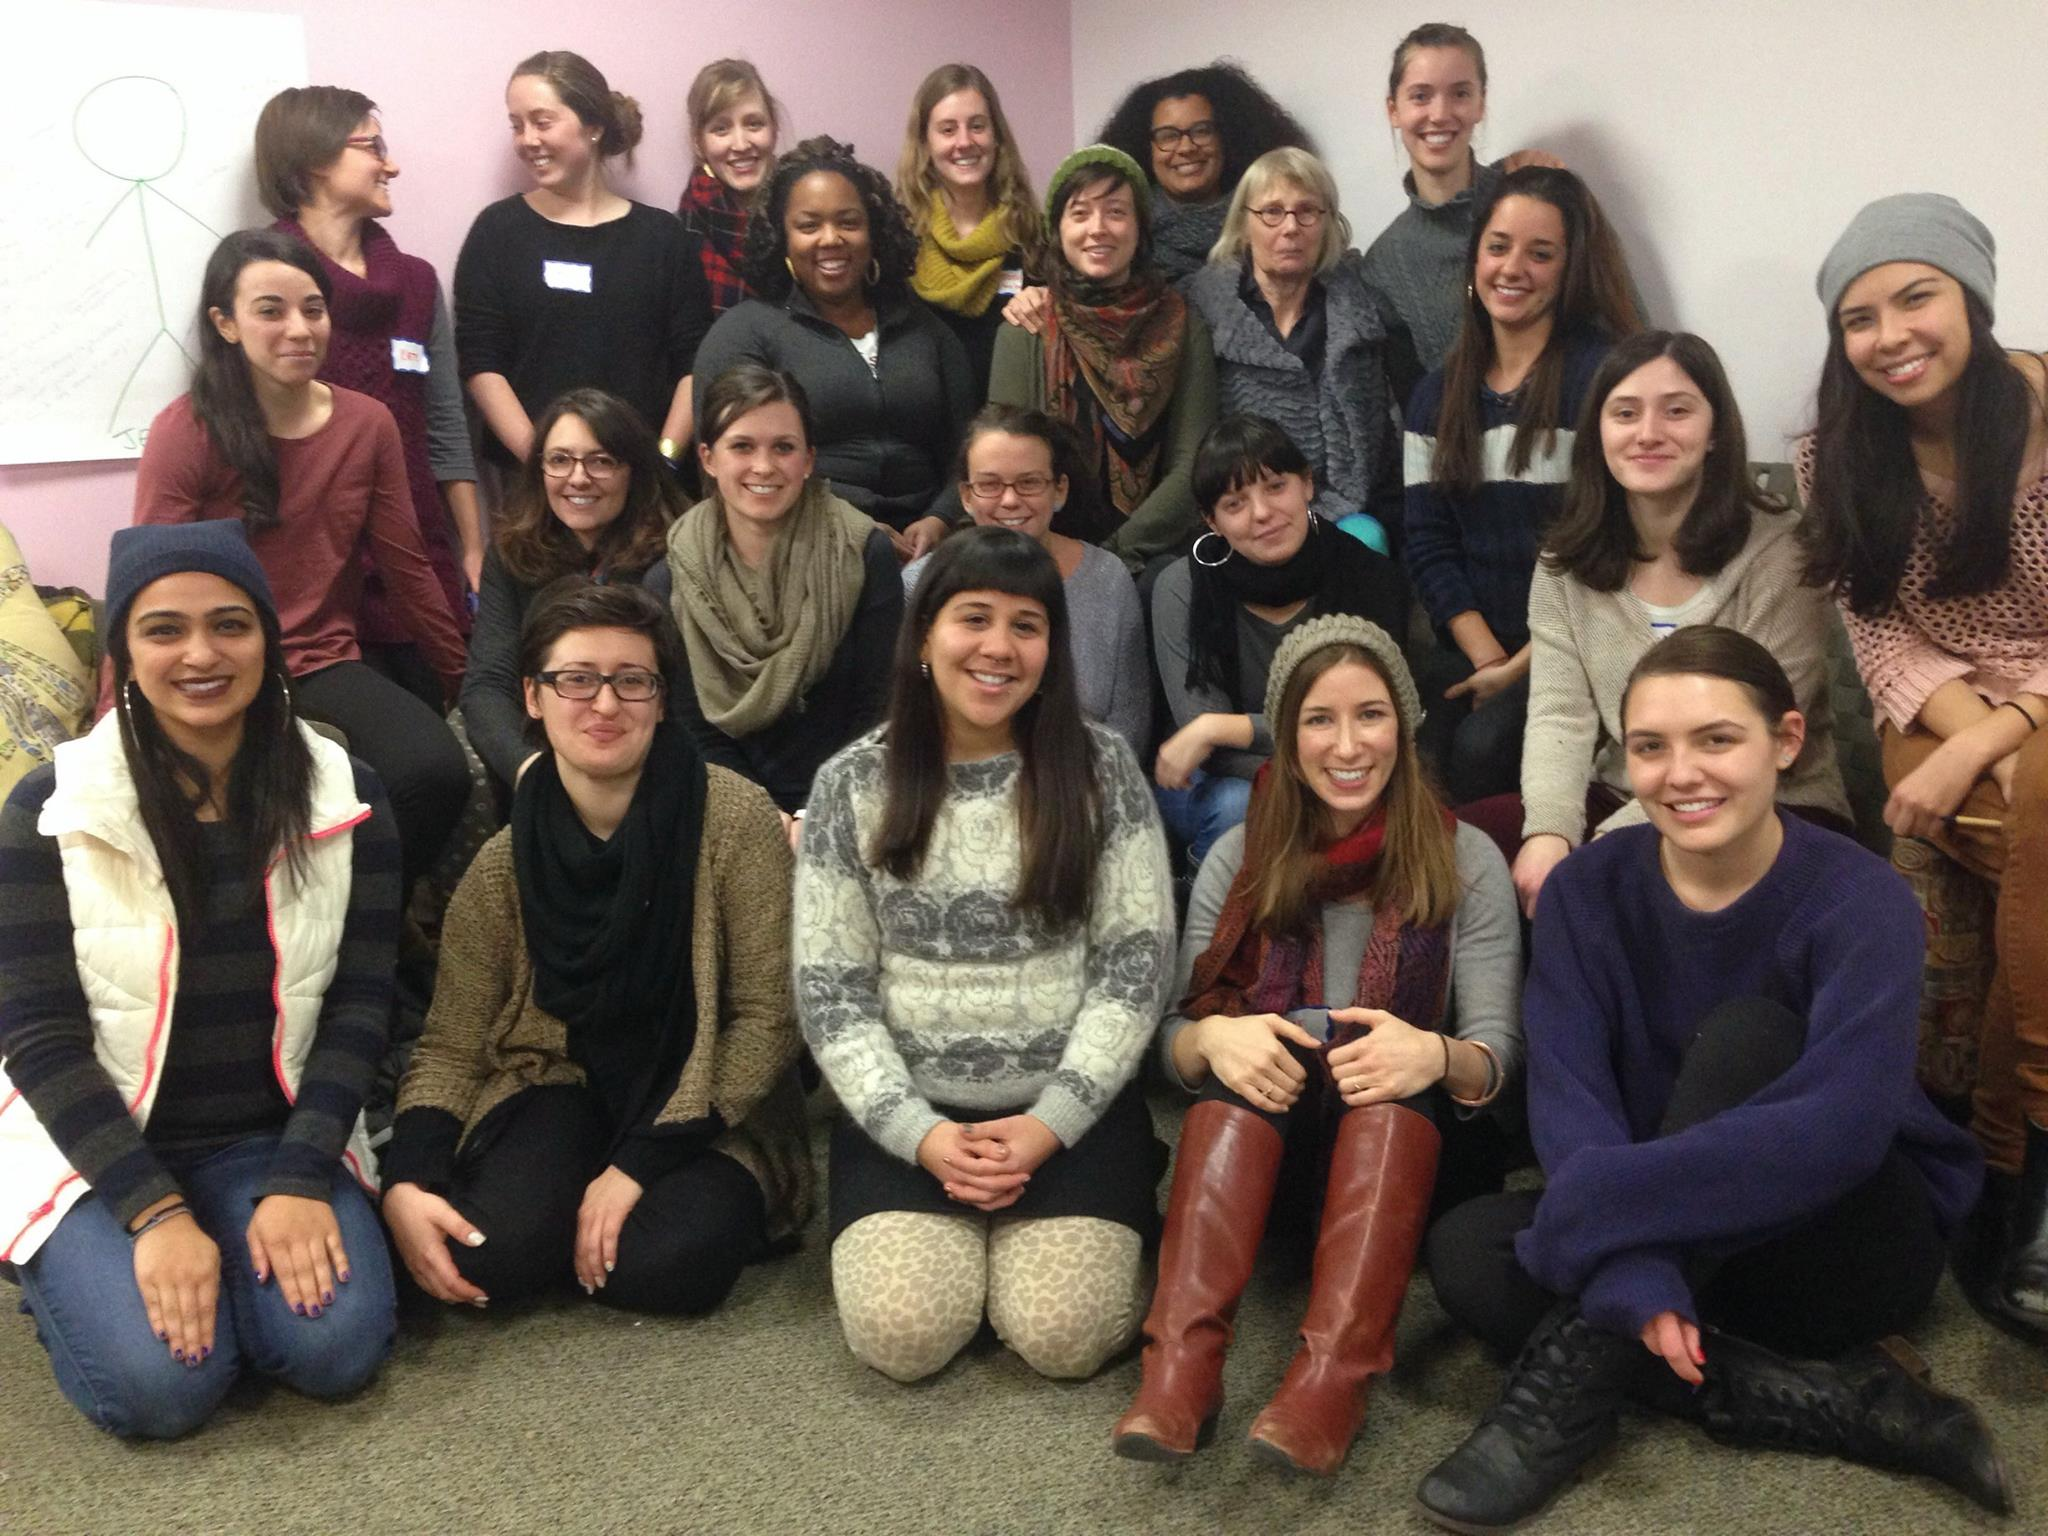 doula project That's why van steemburg, along with her cohort of birth workers and  reproductive justice advocates in the colorado doula project, decided to.